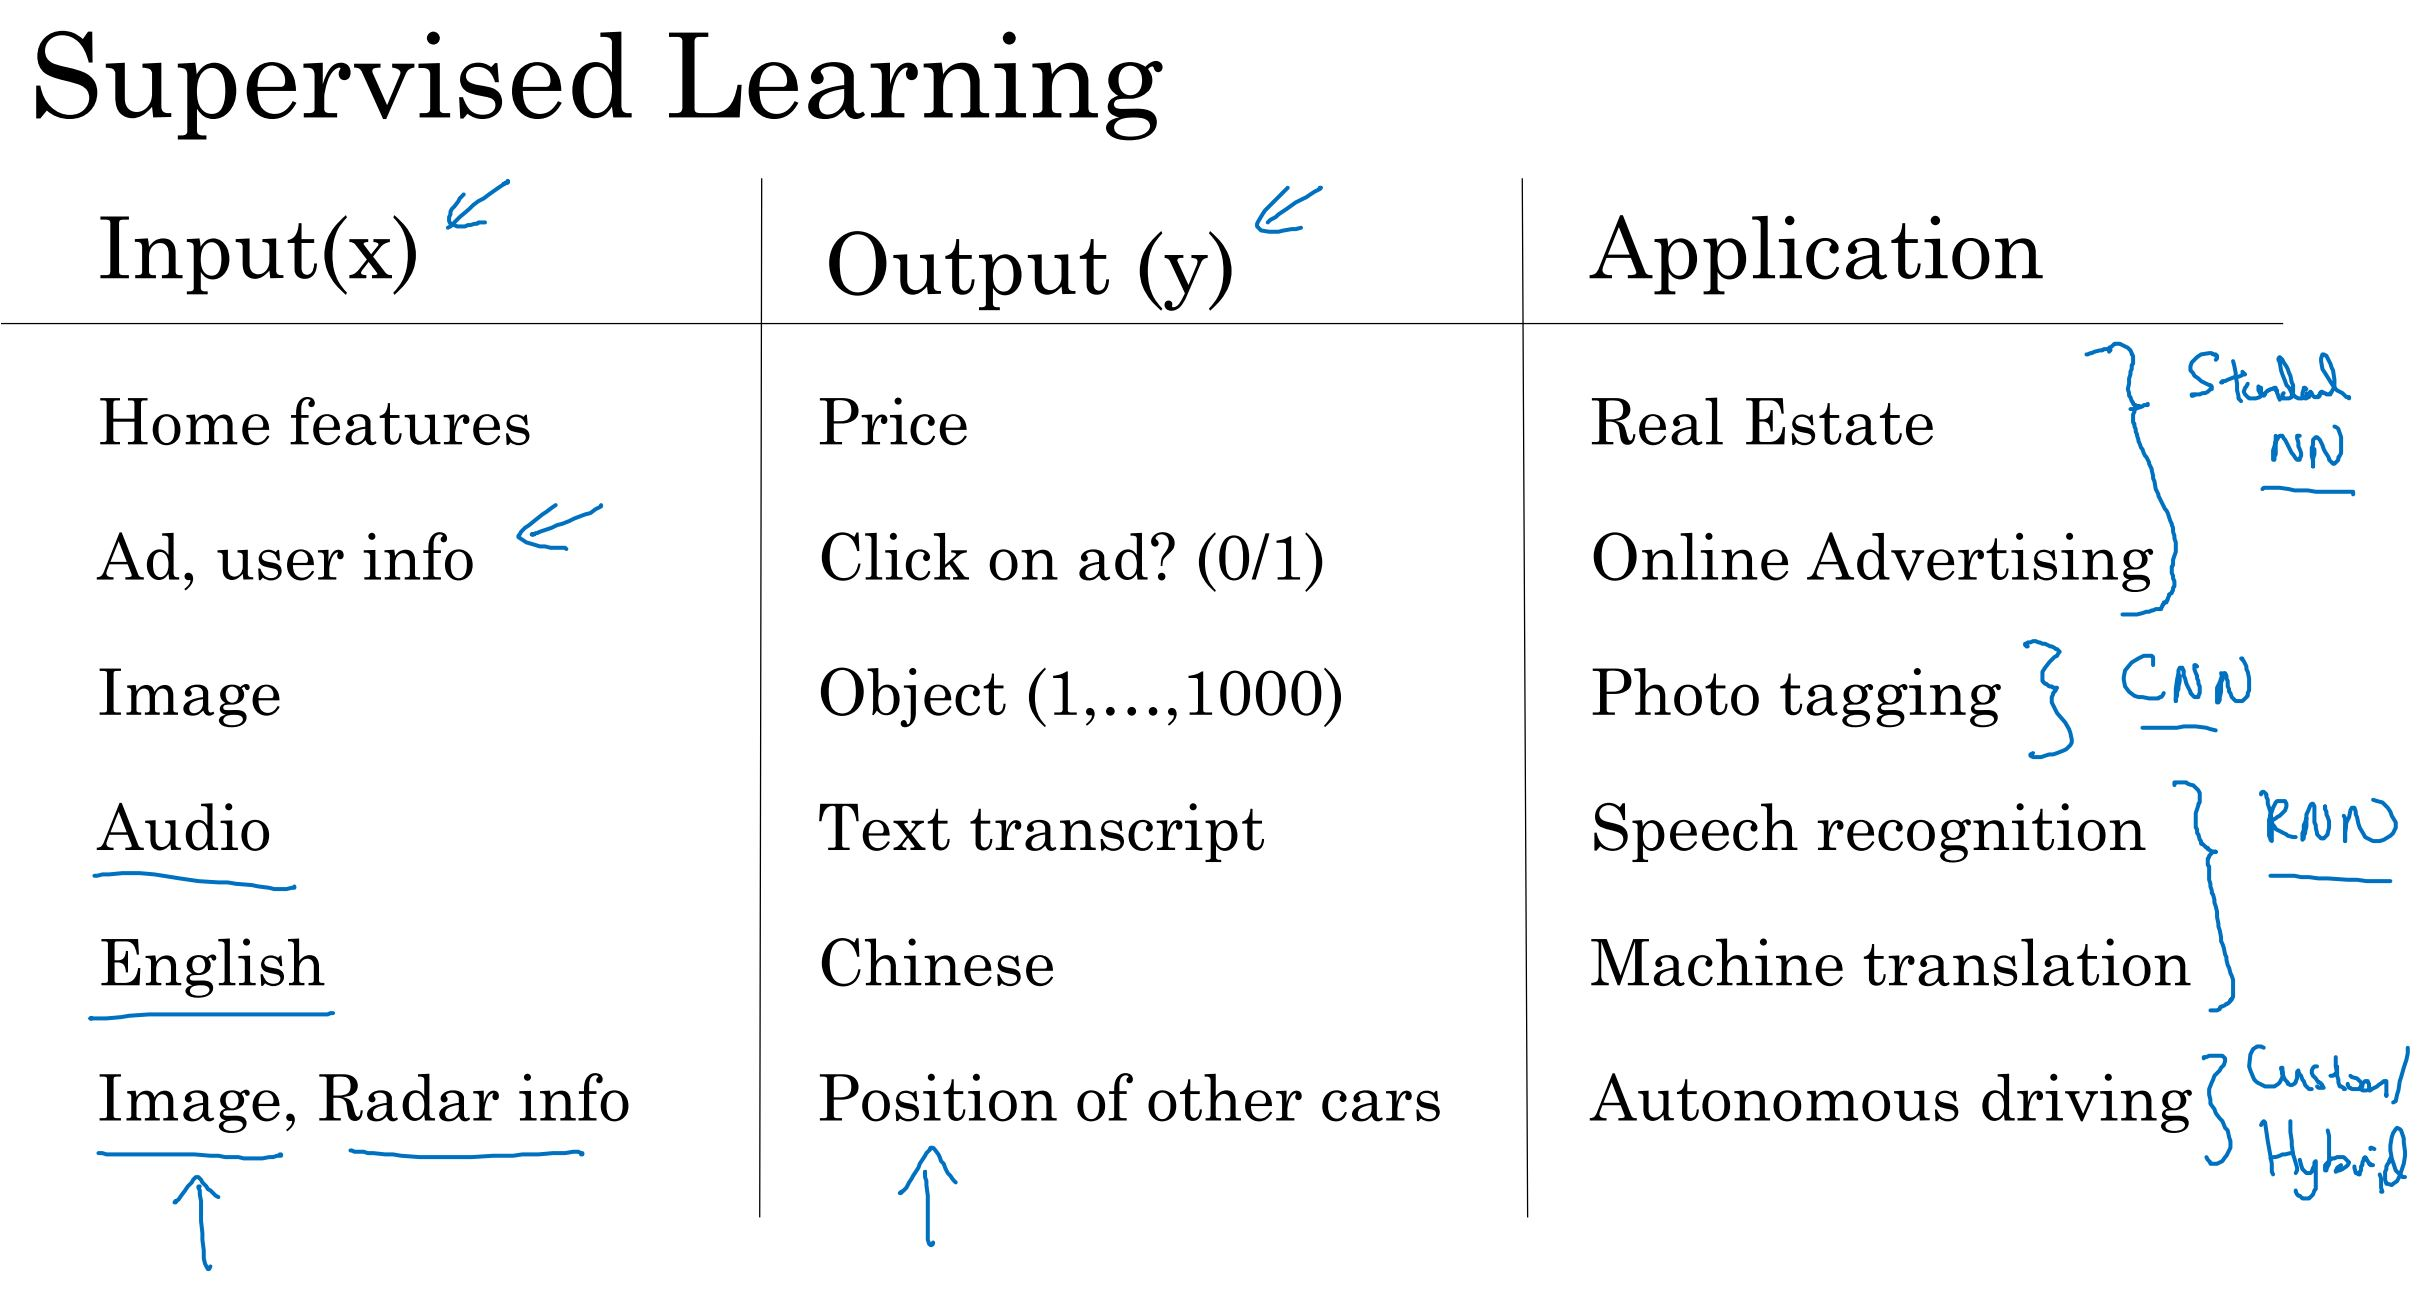 Supervised Learning with DL